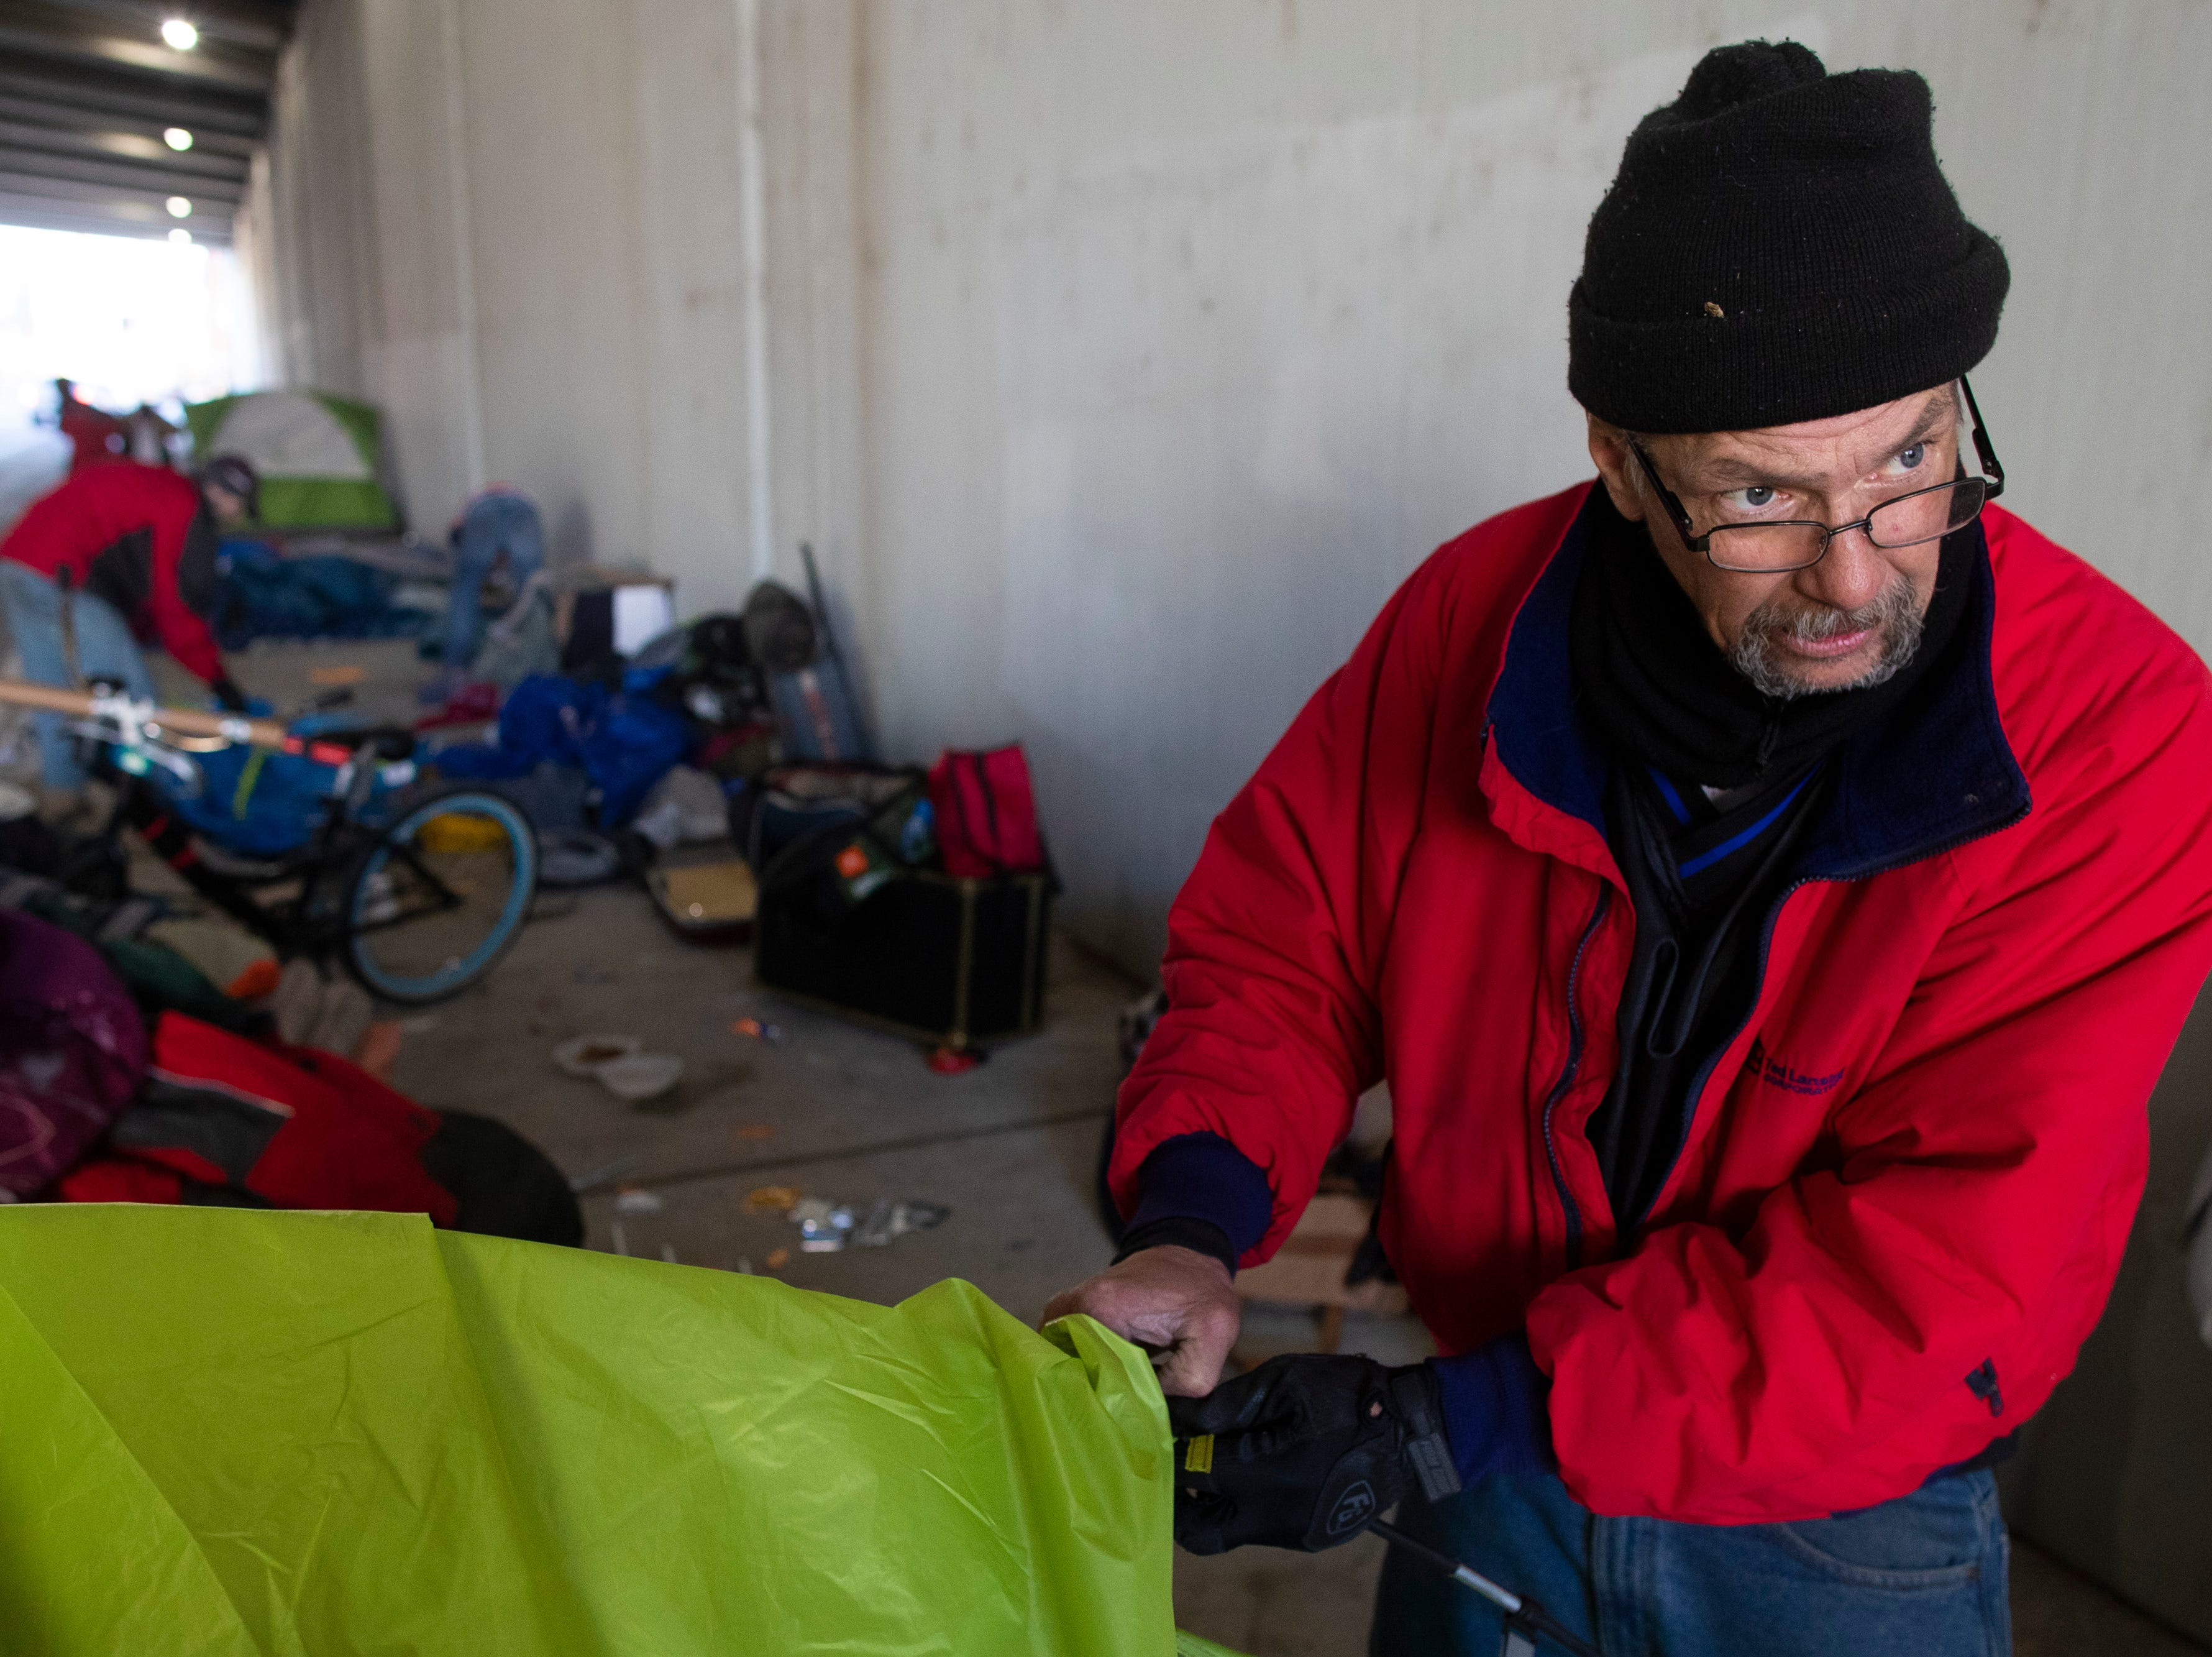 Jeff Weston packs up his family's belongings as Louisville city crews clean out the homeless camp at the intersection of Jackson and Jefferson streets Monday morning.  April 1, 2019